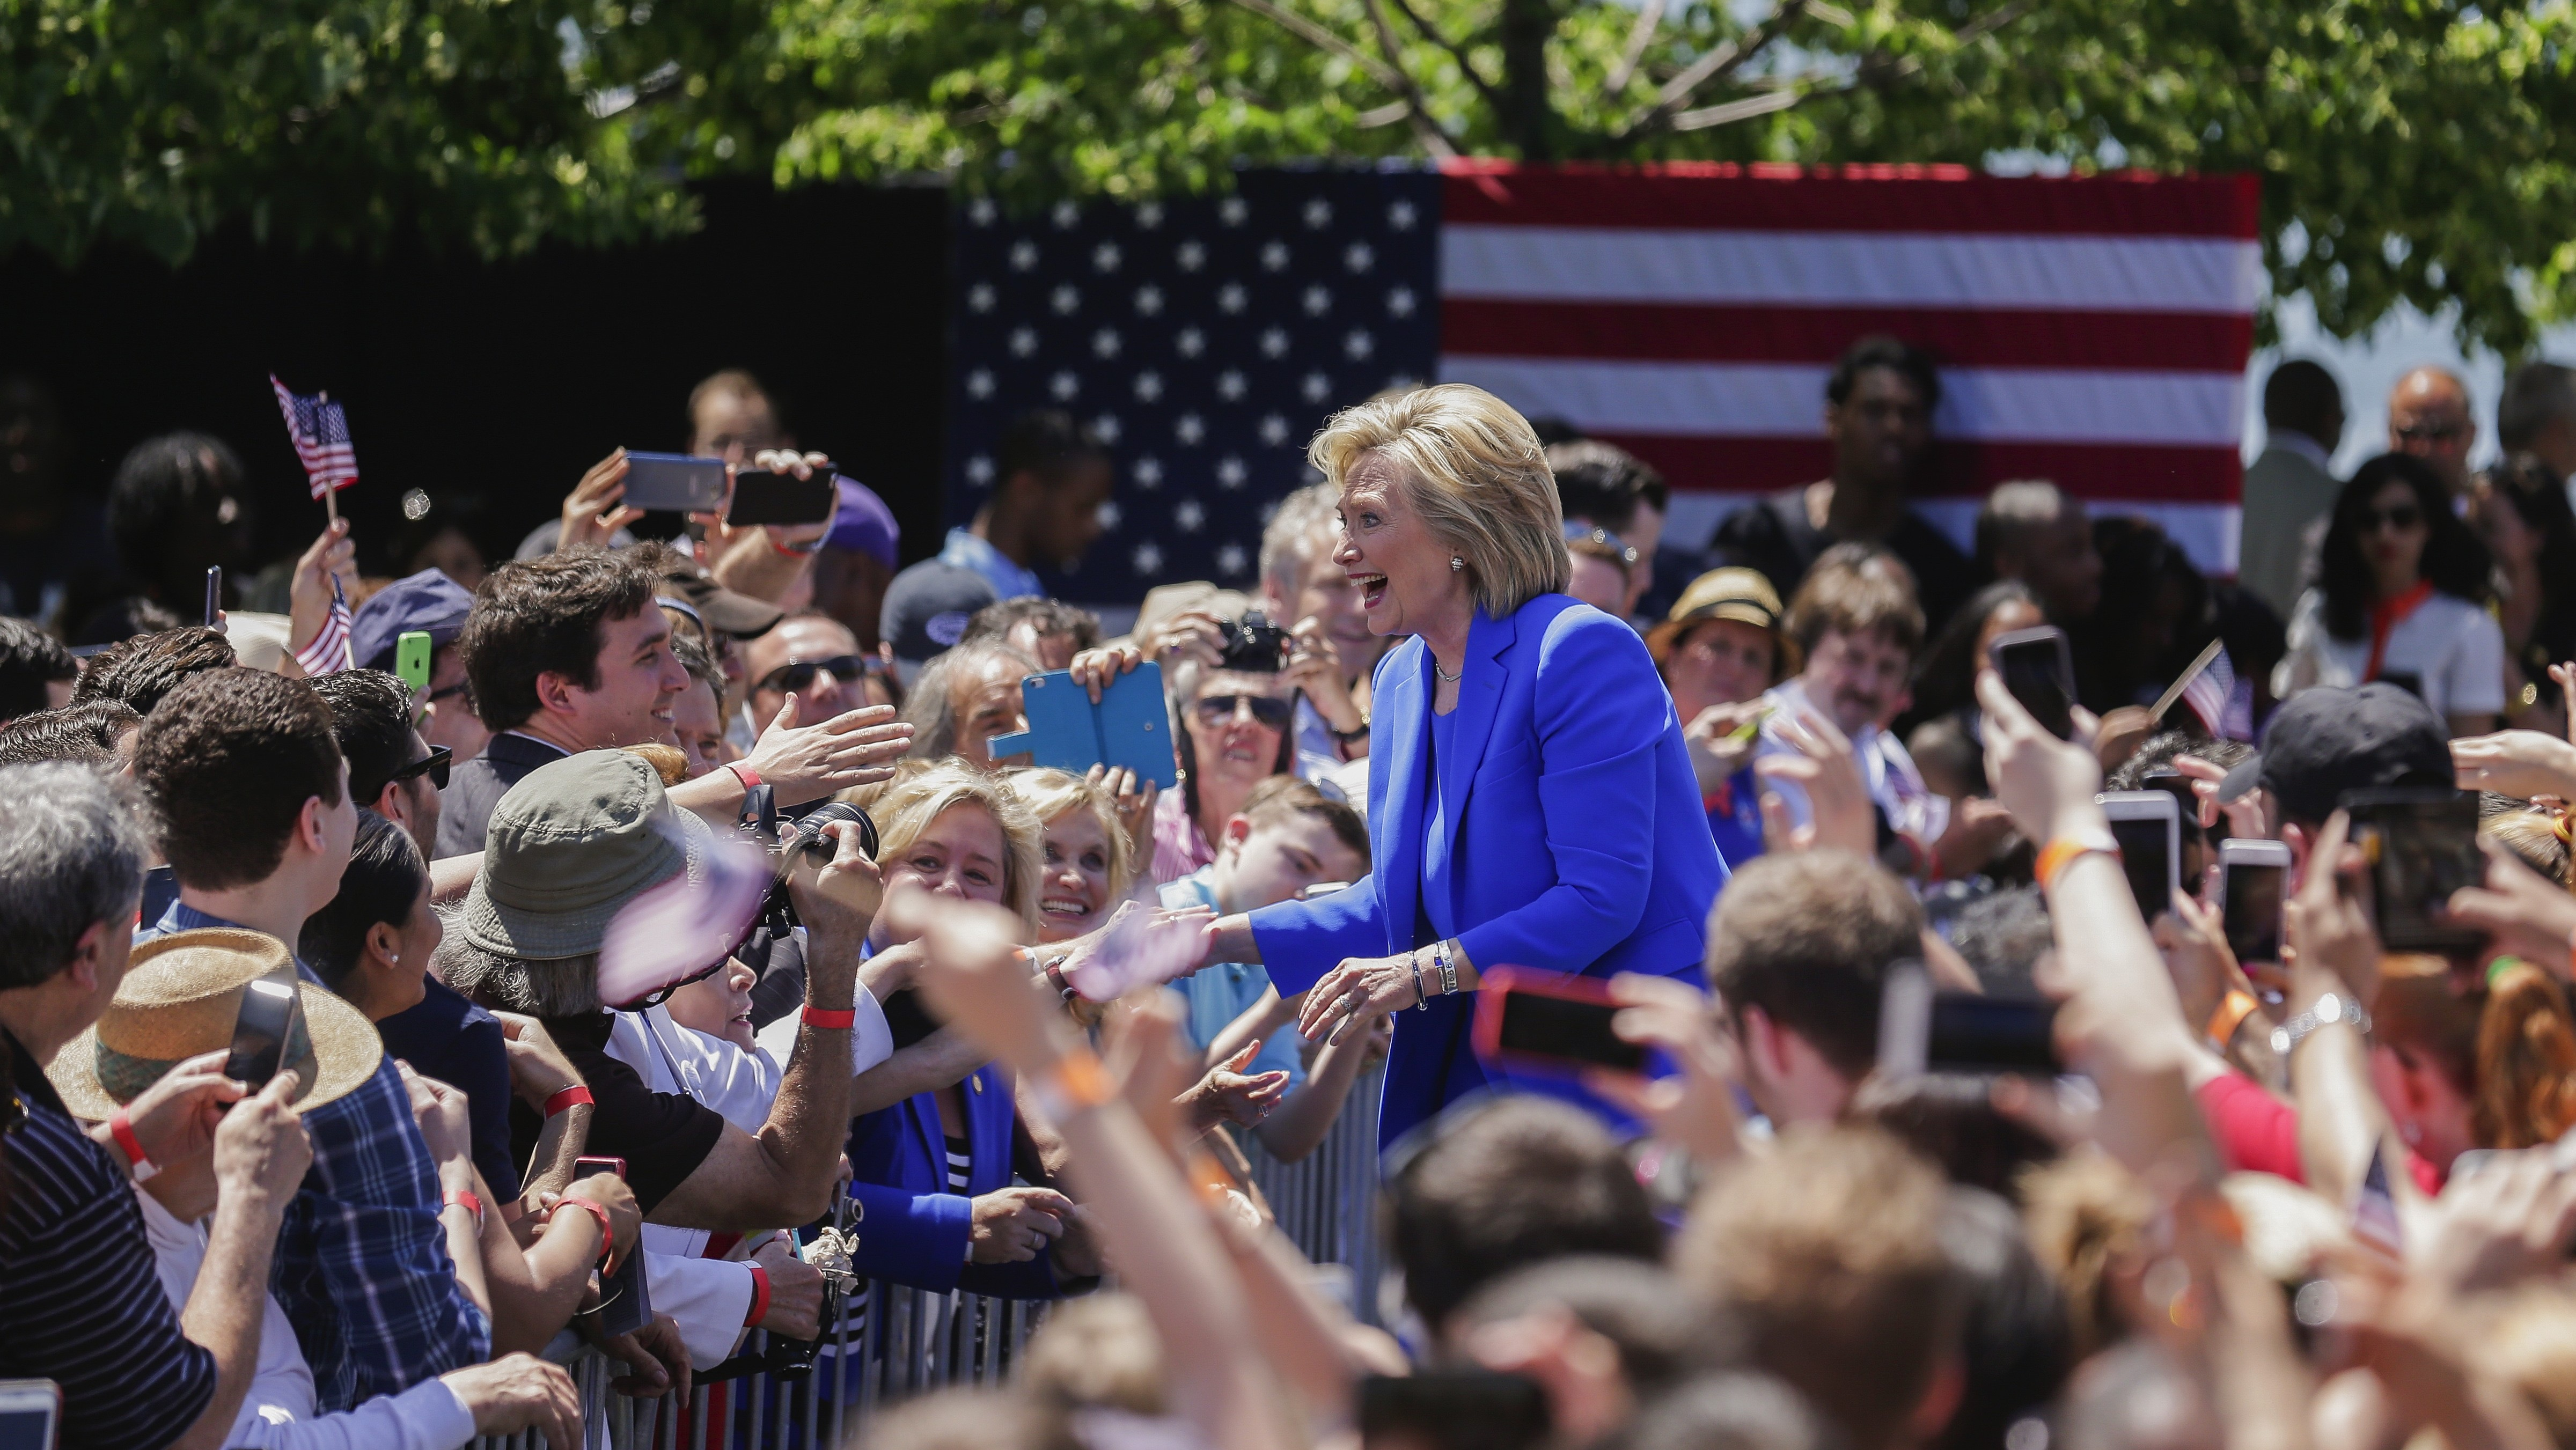 GOP Protesters Can't Kill the Buzz as Clinton Promises Prosperity at Campaign Rally